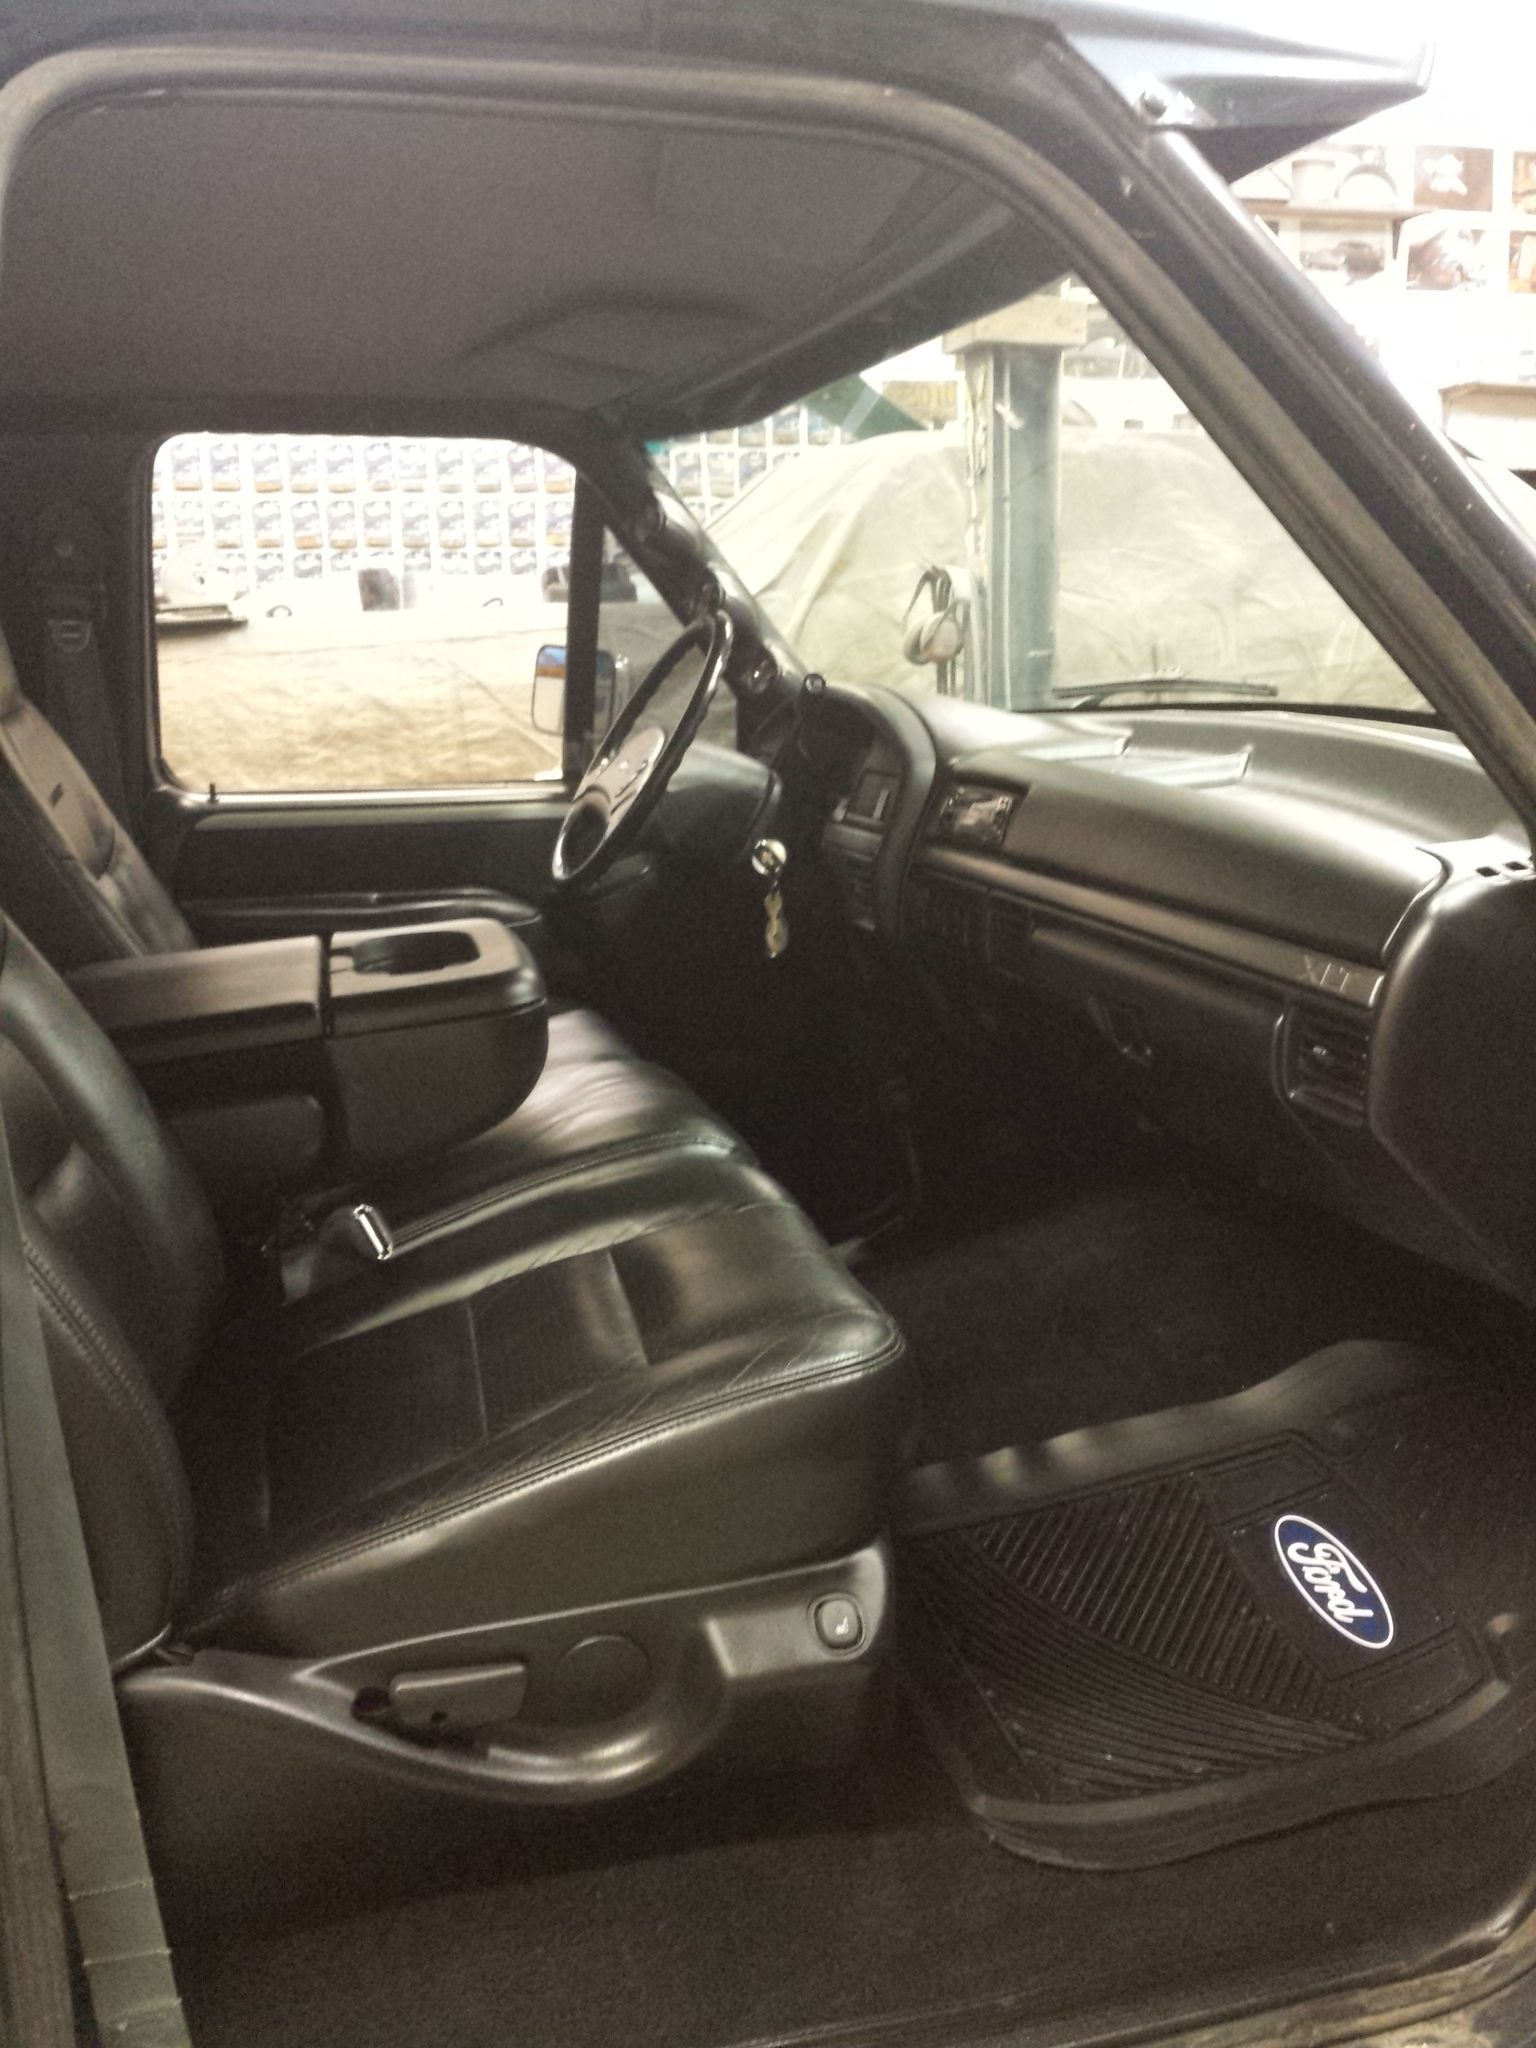 Inside My 1993 F350 Big Blue Full Black Interior Ford Lariat Leather Power Heated Seats Black Carpet Black Panel Truck Interior Ford Obs Ford Pickup Trucks